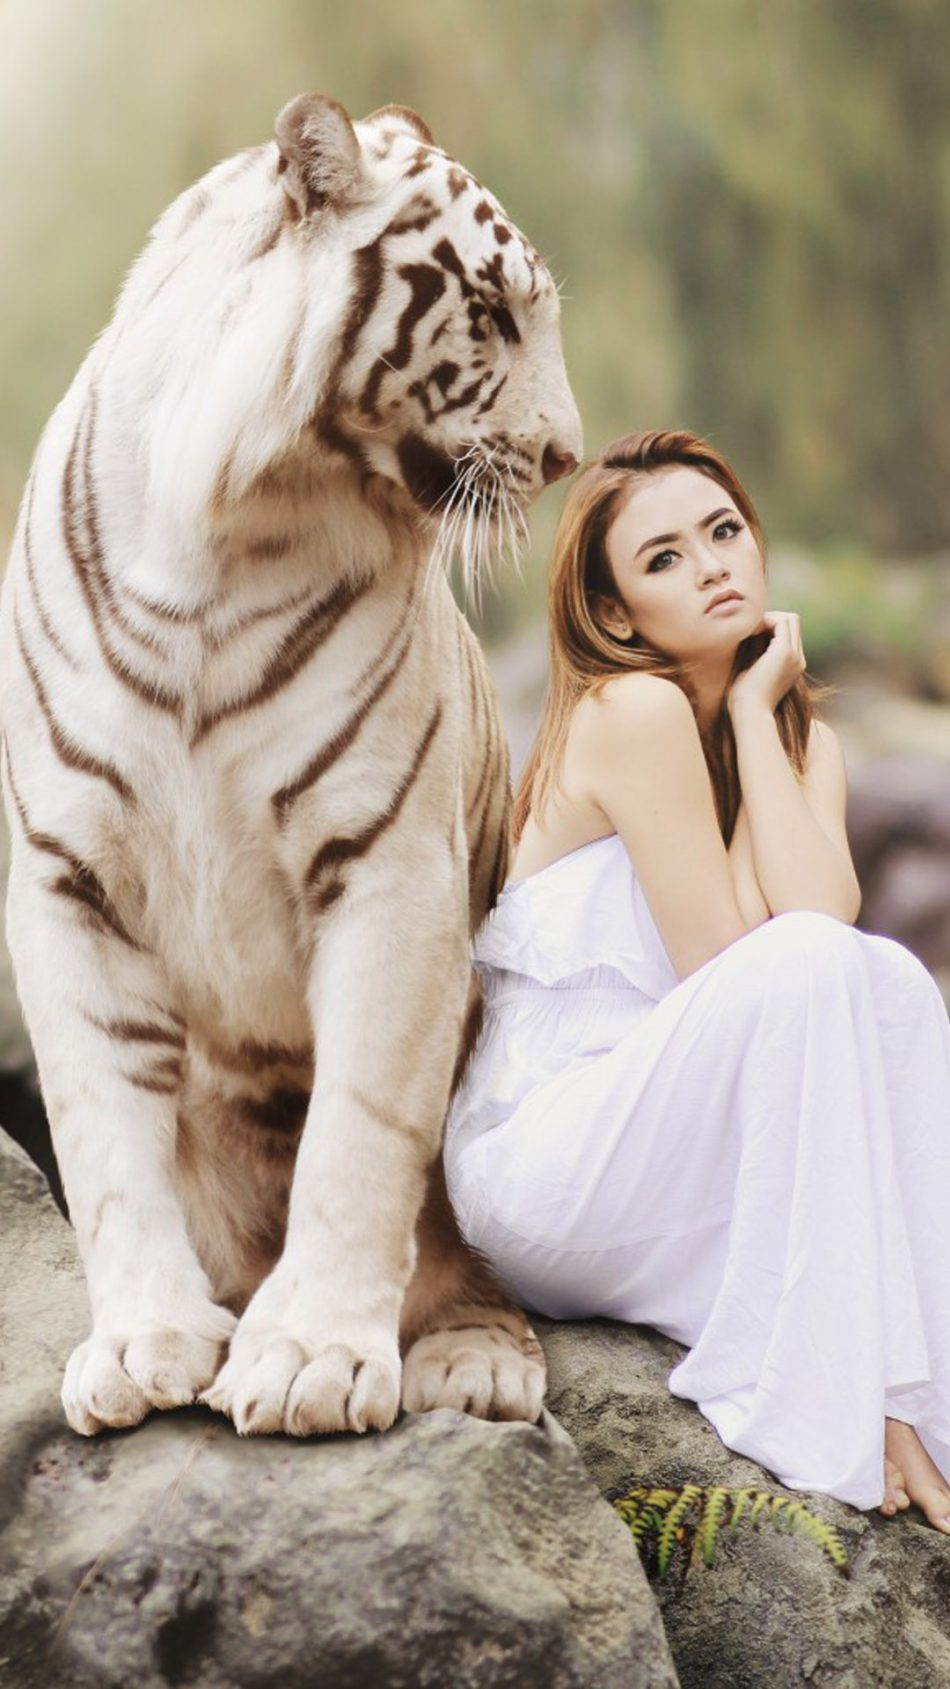 Asian Model With White Tiger Photoshoot 4k Ultra Hd Mobile Wallpaper